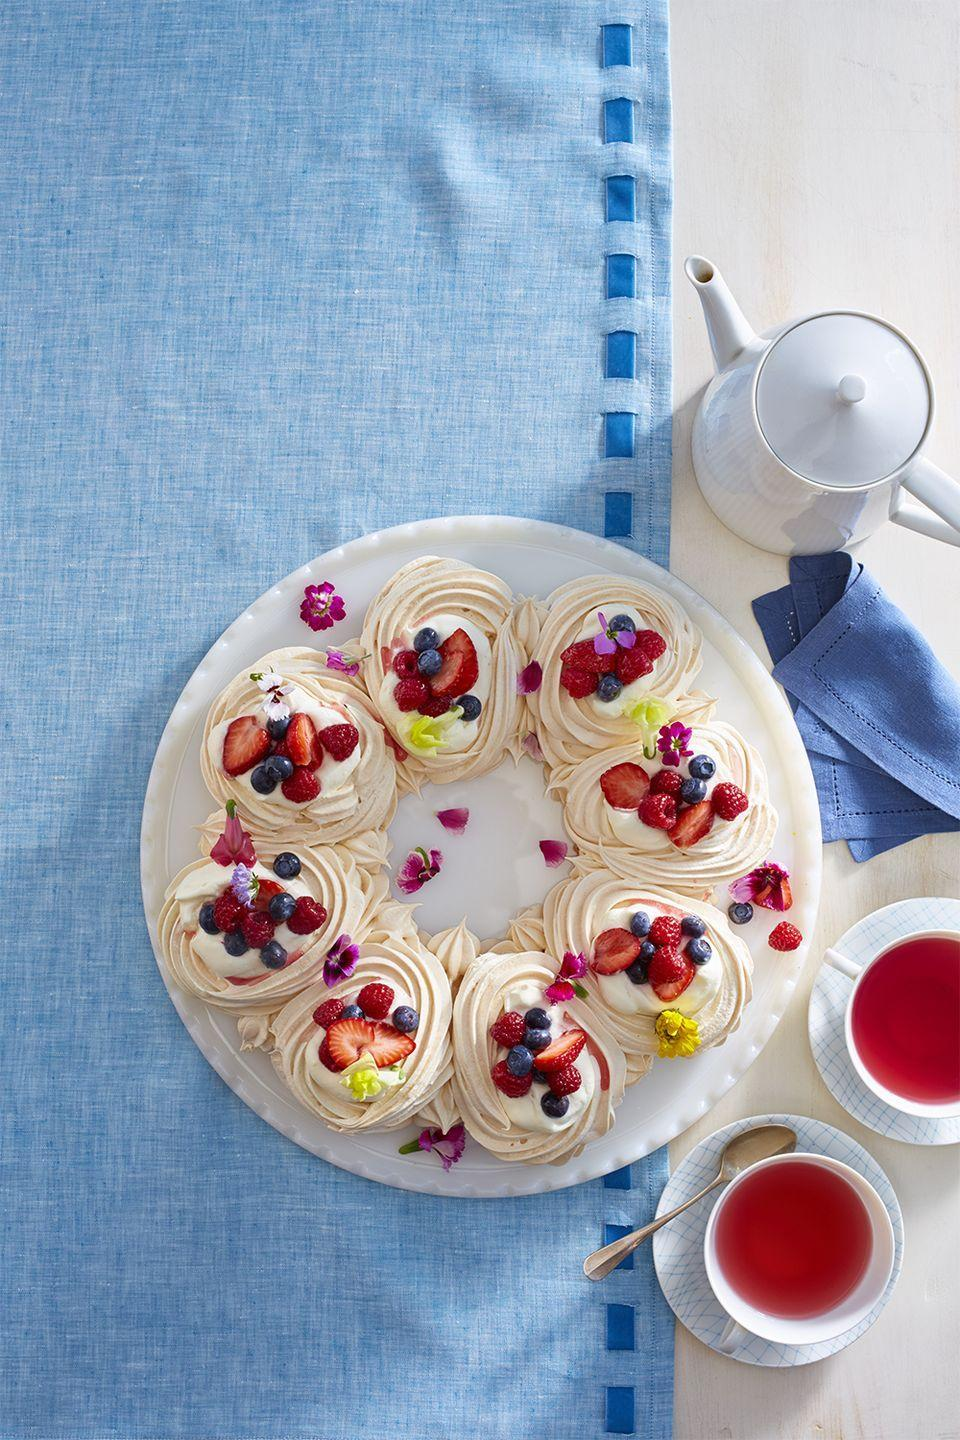 """<p>The lightness of the meringue along with the refreshing fruit is the ideal warm-weather combo. </p><p><em><strong><a href=""""https://www.womansday.com/food-recipes/food-drinks/recipes/a58133/meringue-wreath-recipe/"""" rel=""""nofollow noopener"""" target=""""_blank"""" data-ylk=""""slk:Get the Meringue Wreath recipe."""" class=""""link rapid-noclick-resp"""">Get the Meringue Wreath recipe. </a></strong></em></p>"""